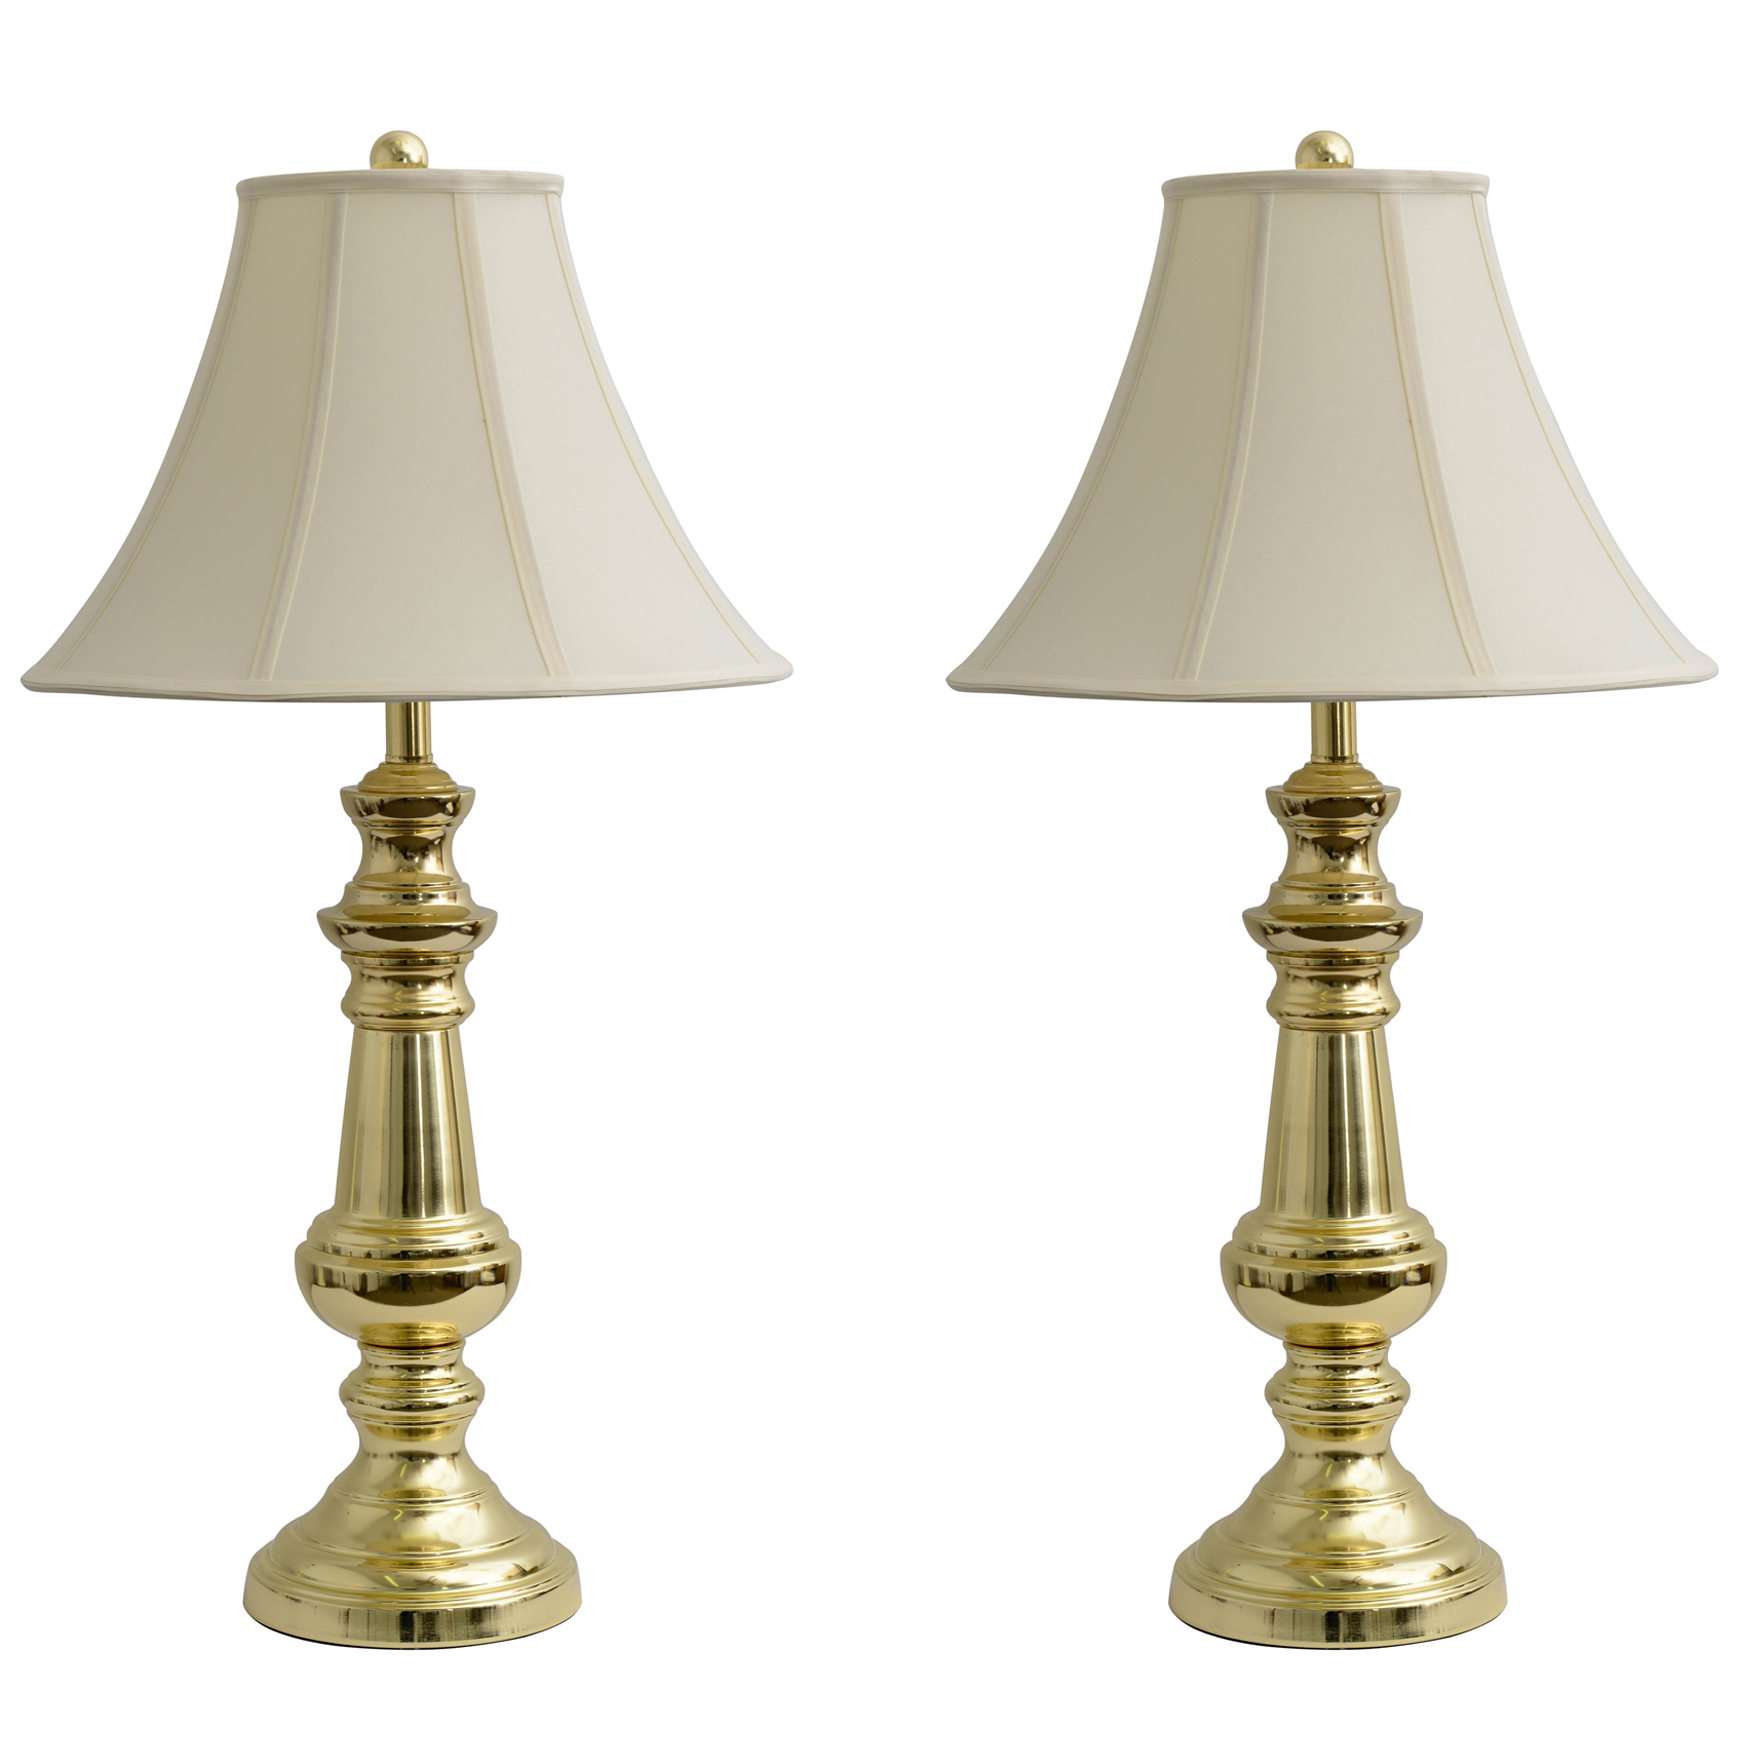 1 (Pair) Touch Control Polished Brass Table Lamps, POLISHED BRASS